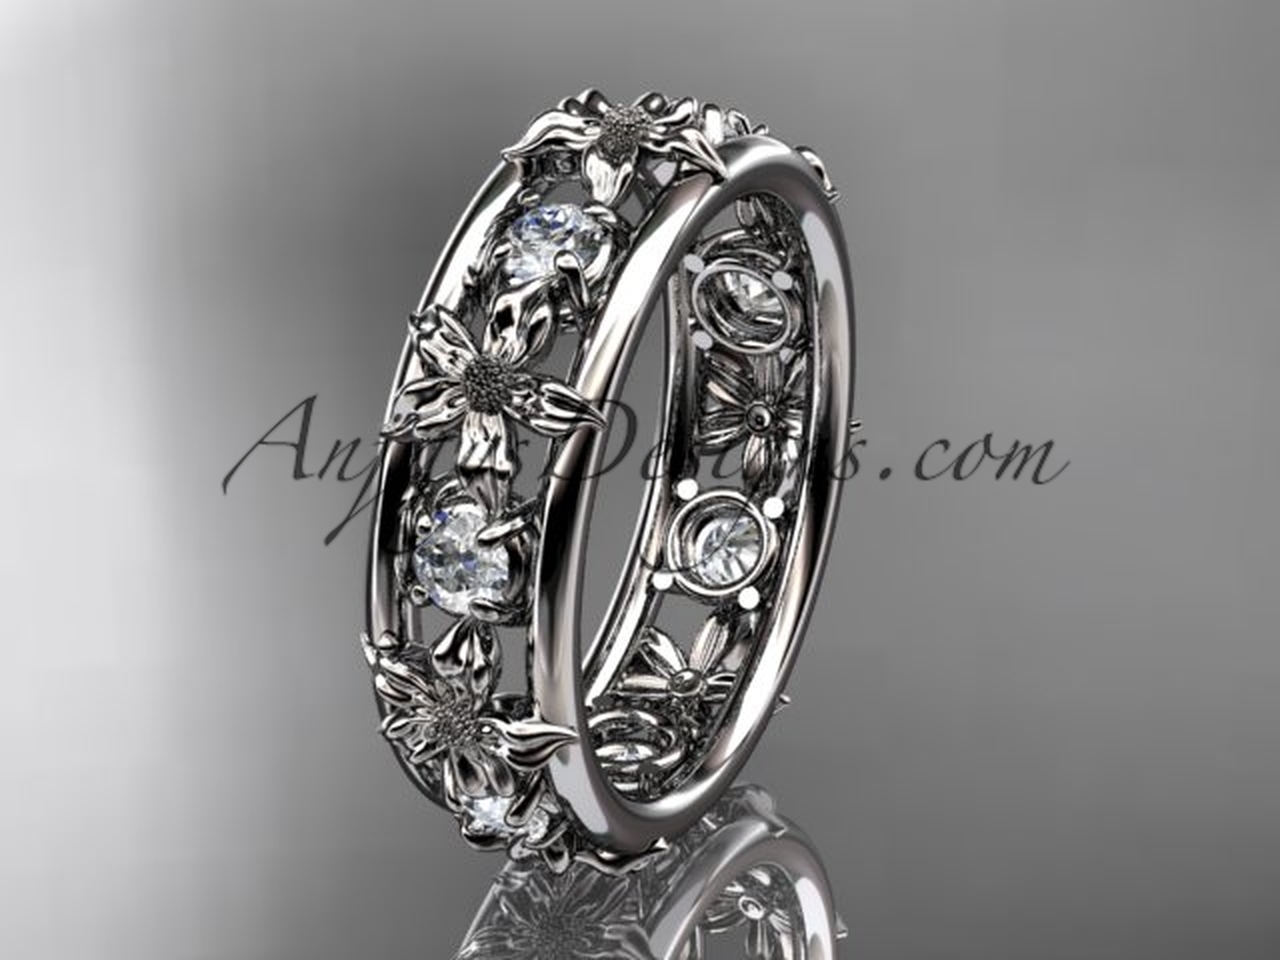 platinum diamond leaf wedding ring engagement ring wedding band adlr160b nature inspired jewelry - Leaf Wedding Ring